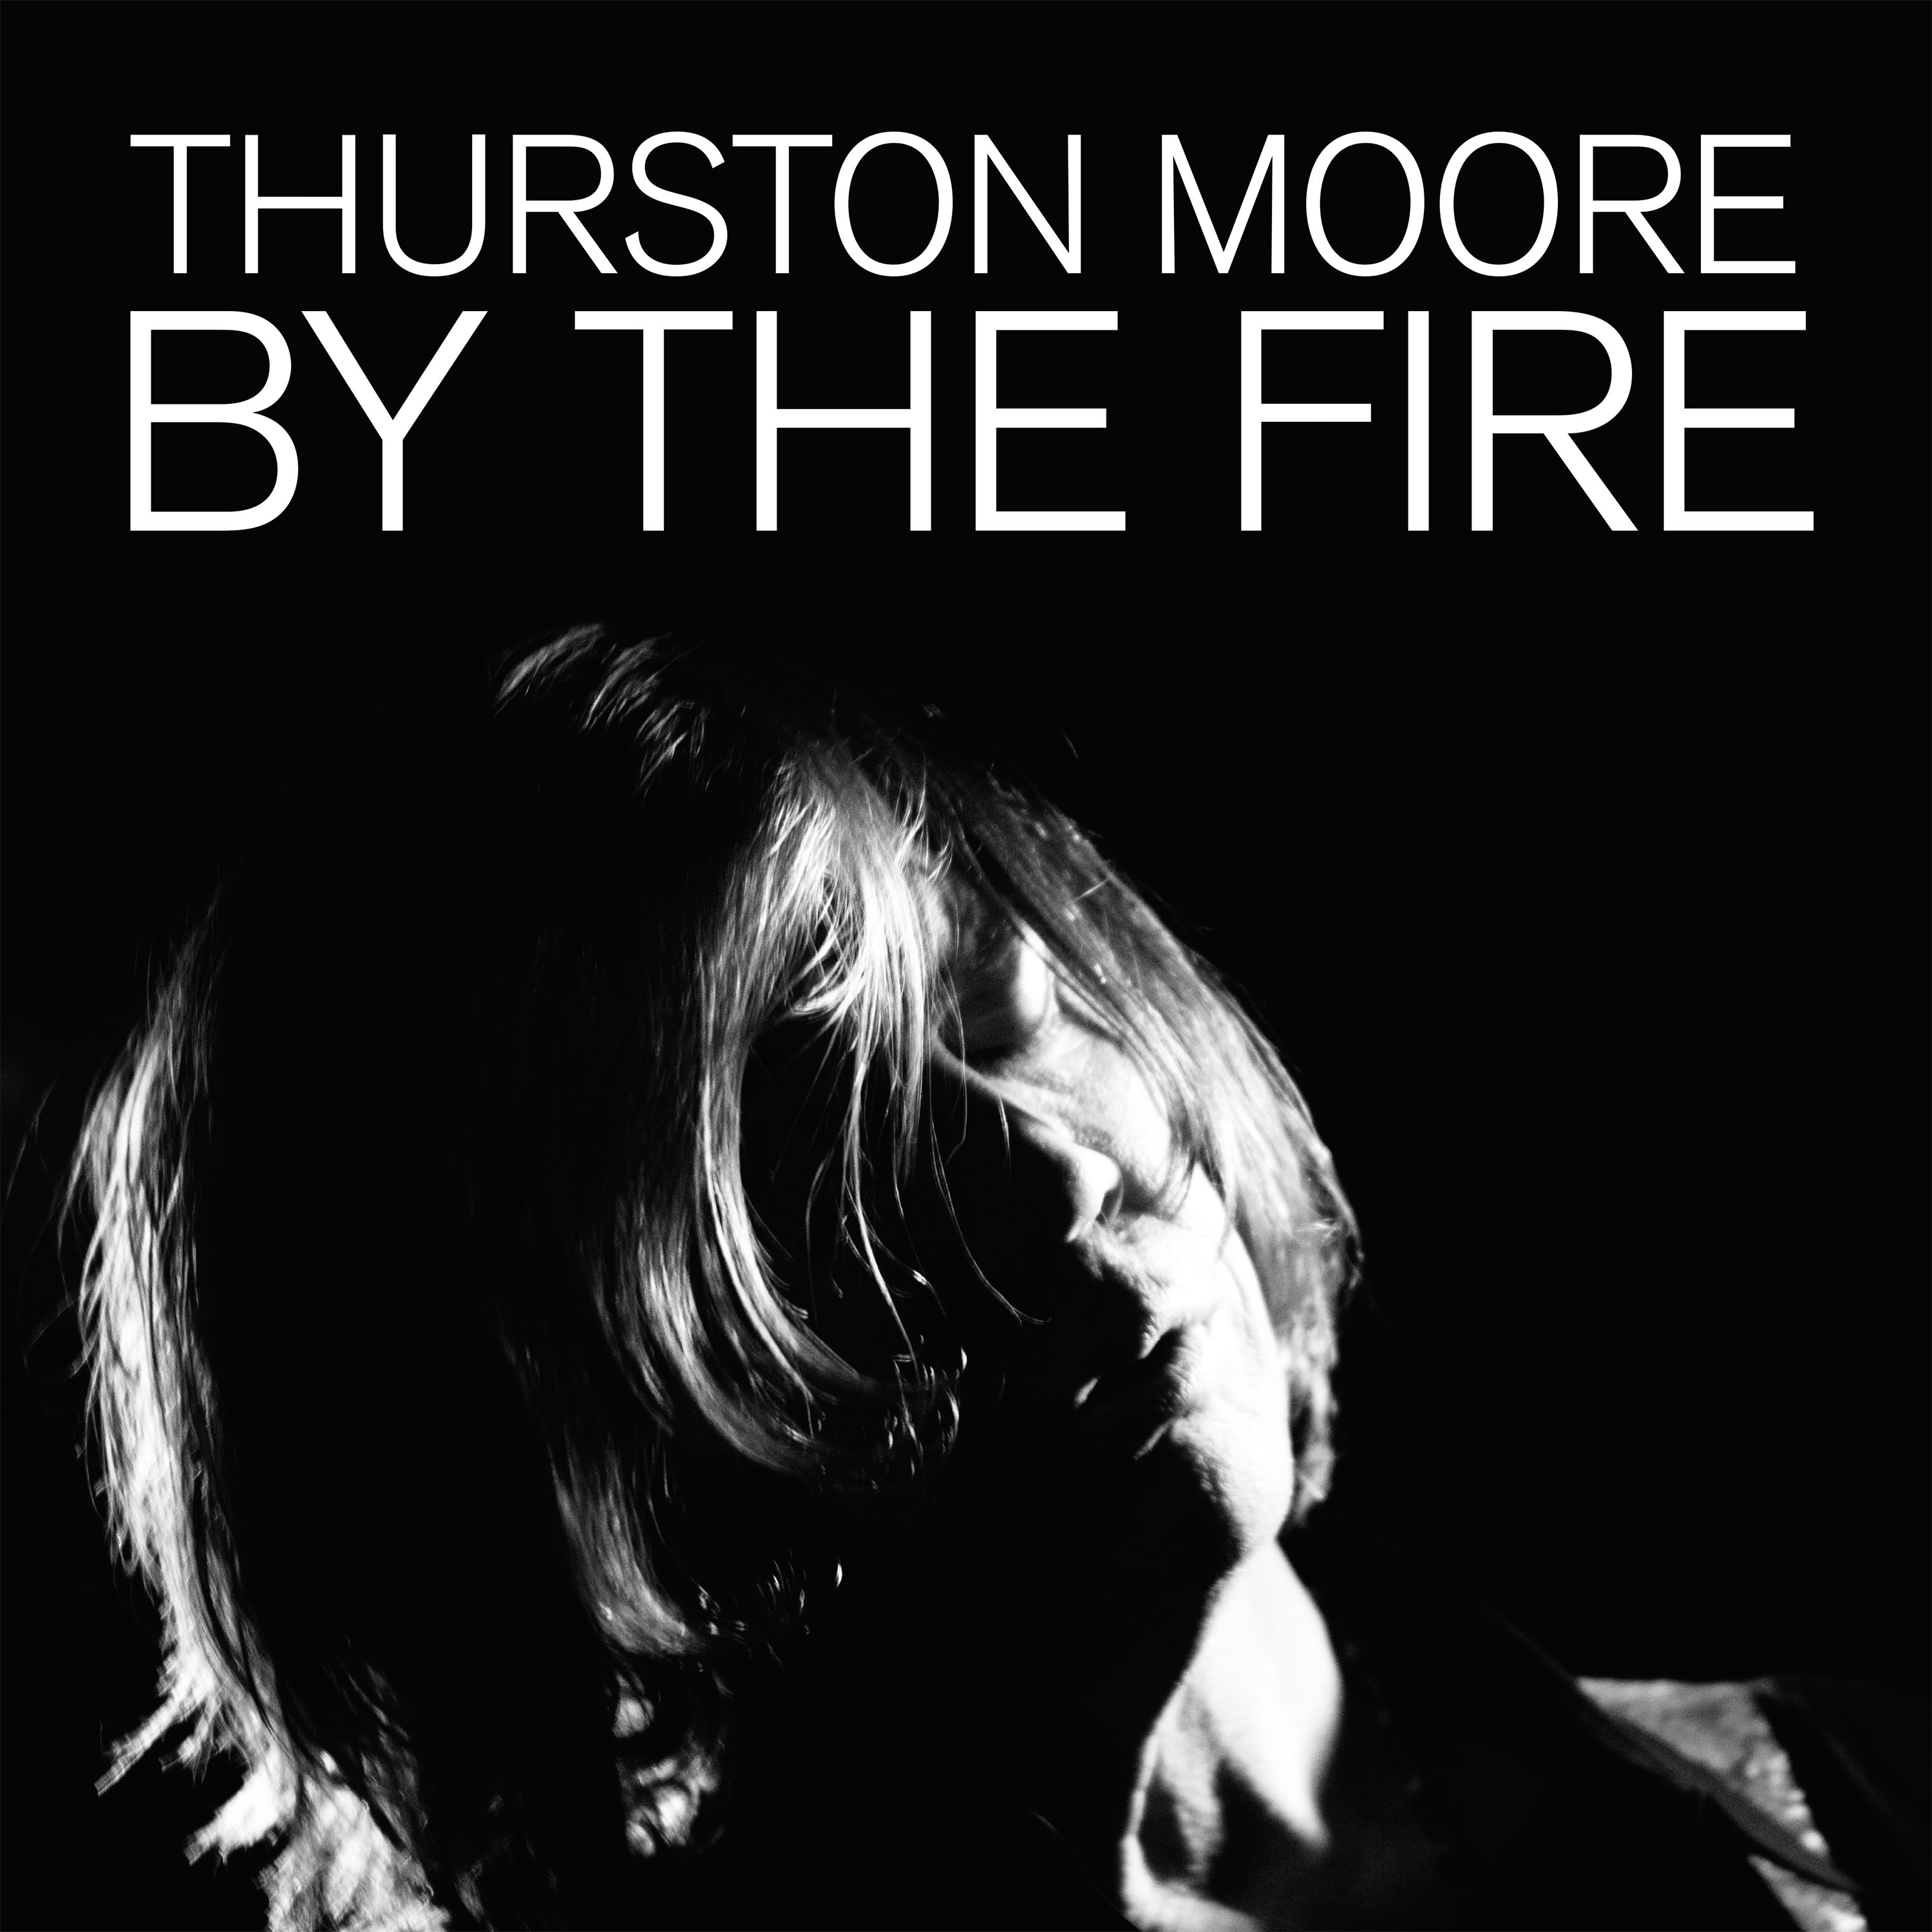 Thurston Moore - By The Fire [LTD 2xLP] (Audiophile black vinyl)